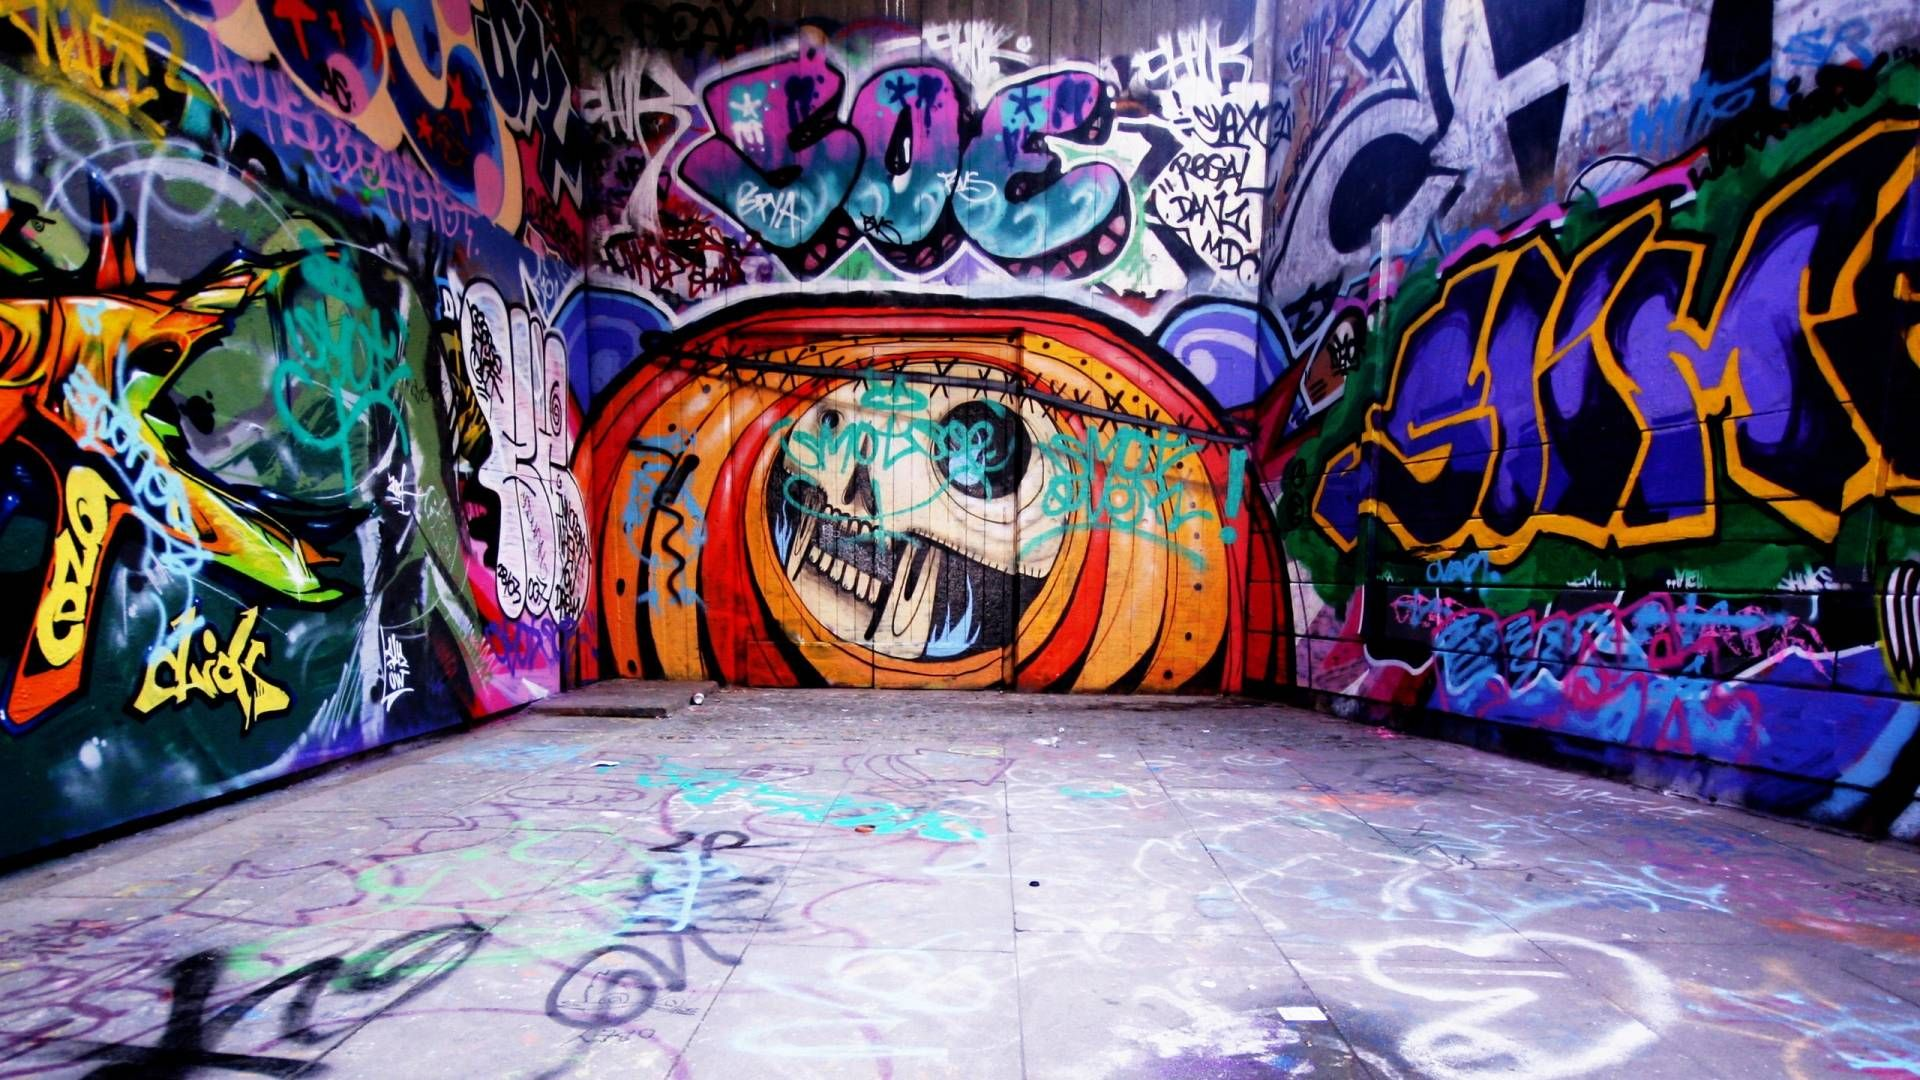 Graffiti wall hd - Handpicked Graffiti Wallpapersbackgrounds For Free Download